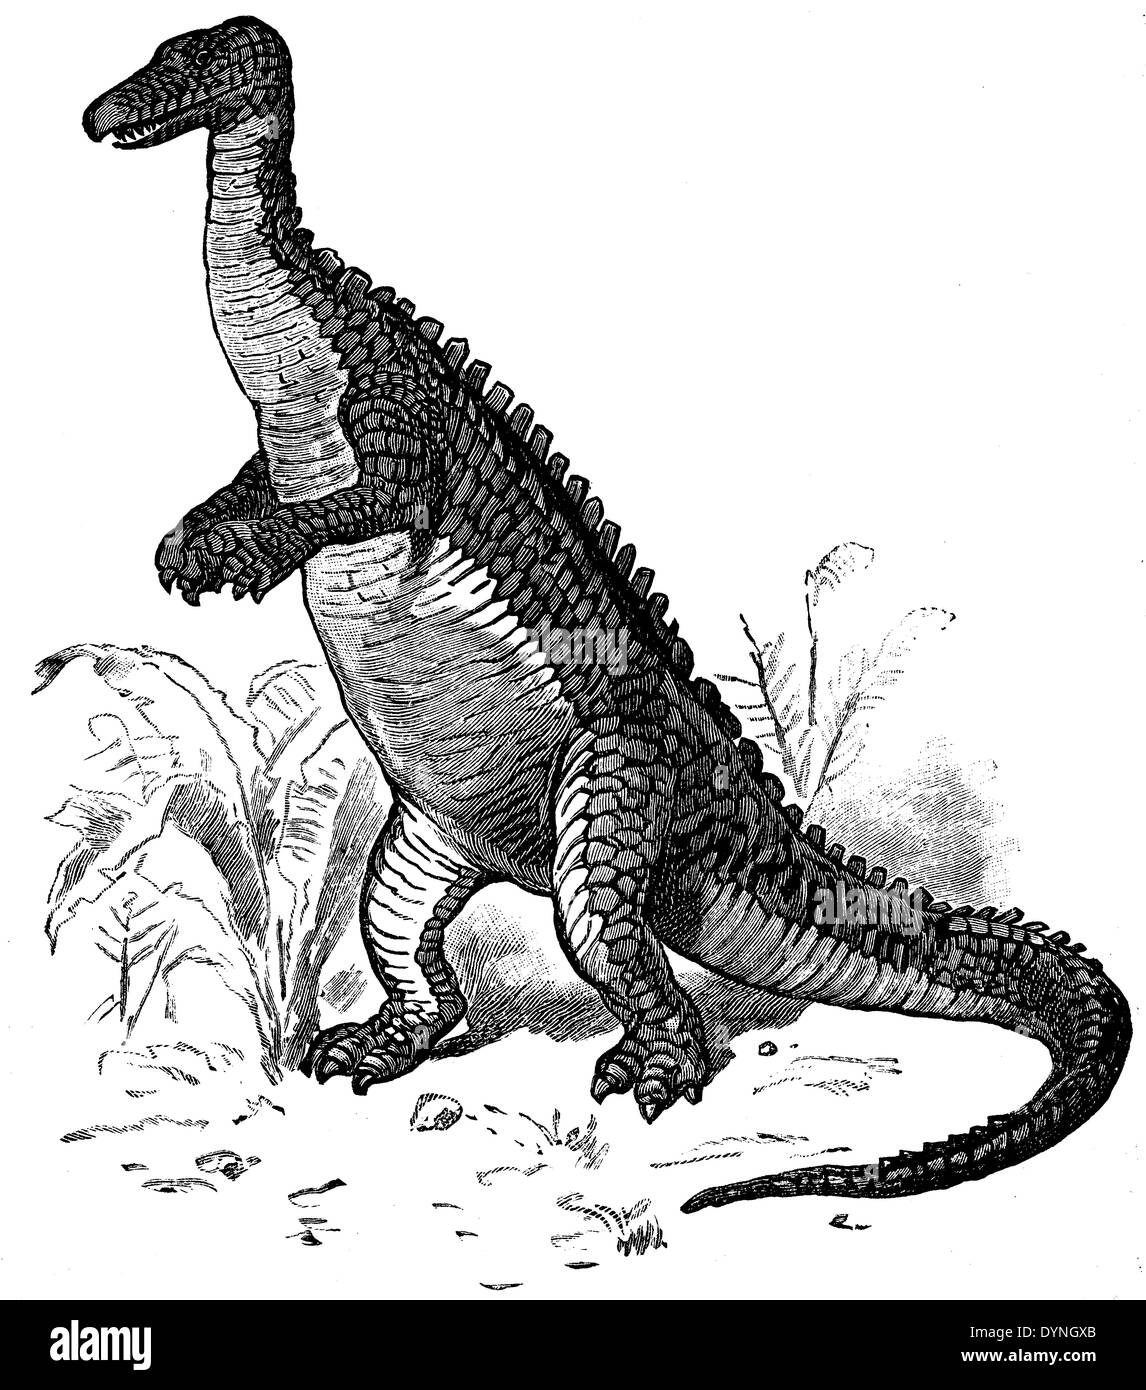 iguanodon stock photos iguanodon stock images page 3 alamy. Black Bedroom Furniture Sets. Home Design Ideas